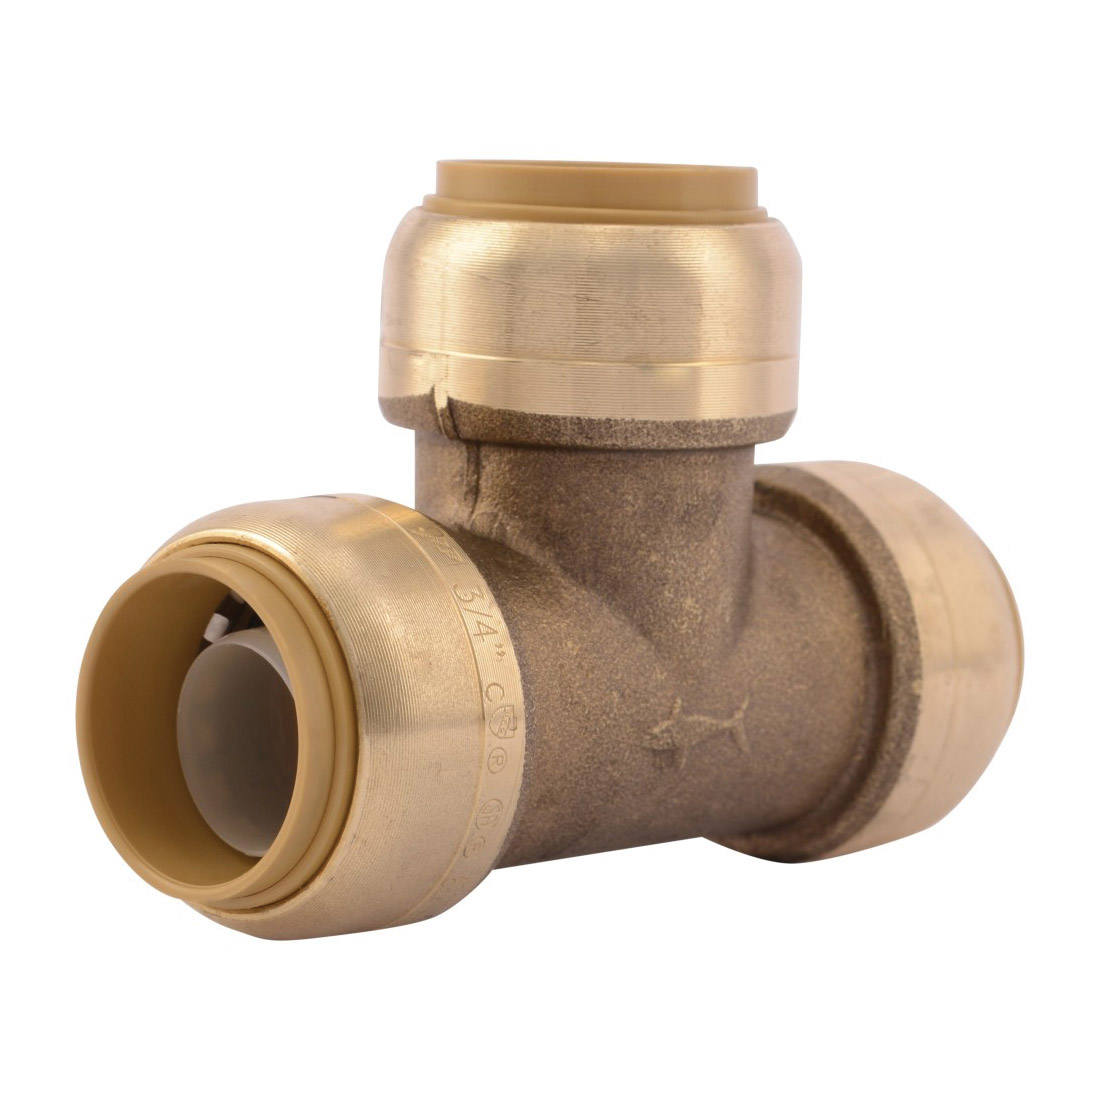 Sharkbite® U370LF Pipe Tee, 3/4 in Nominal, Push-Fit End Style, Brass, Natural Brass/Chrome Plated, Import